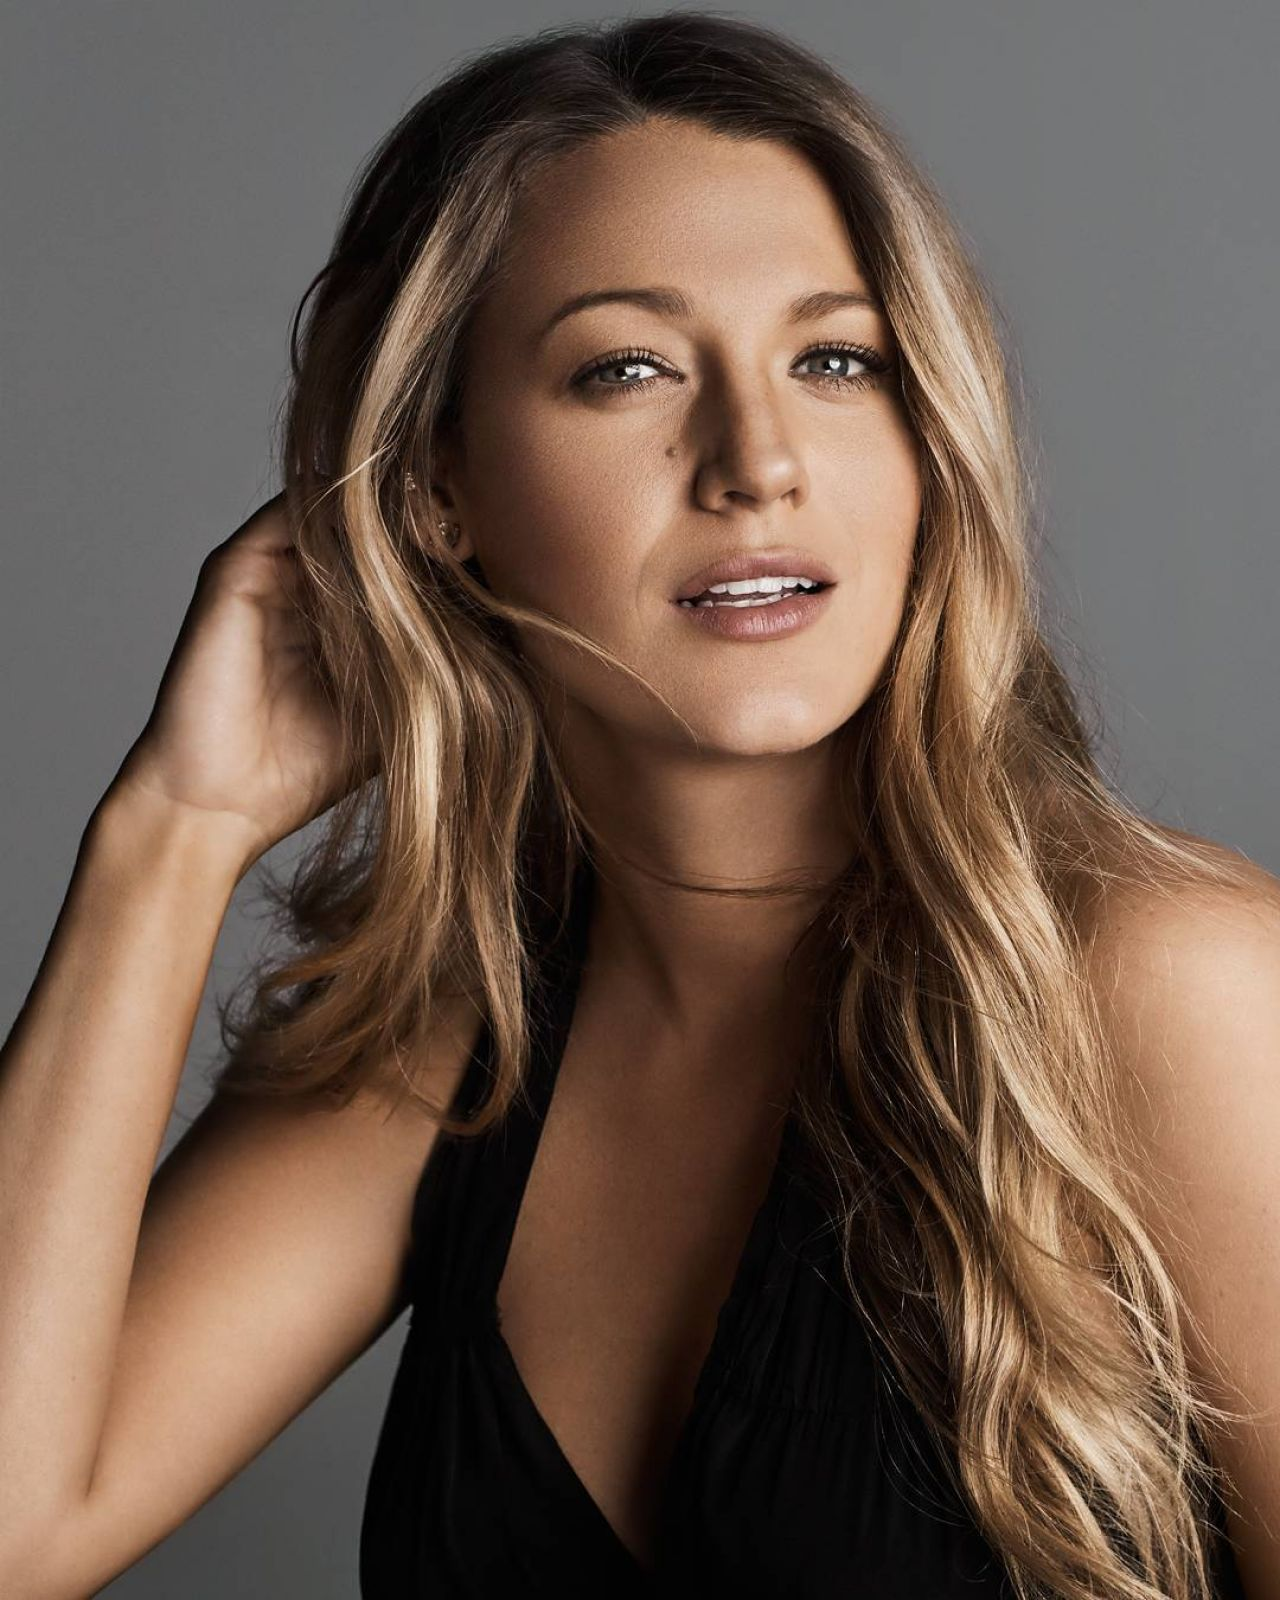 Blake Lively - The Perfectionist